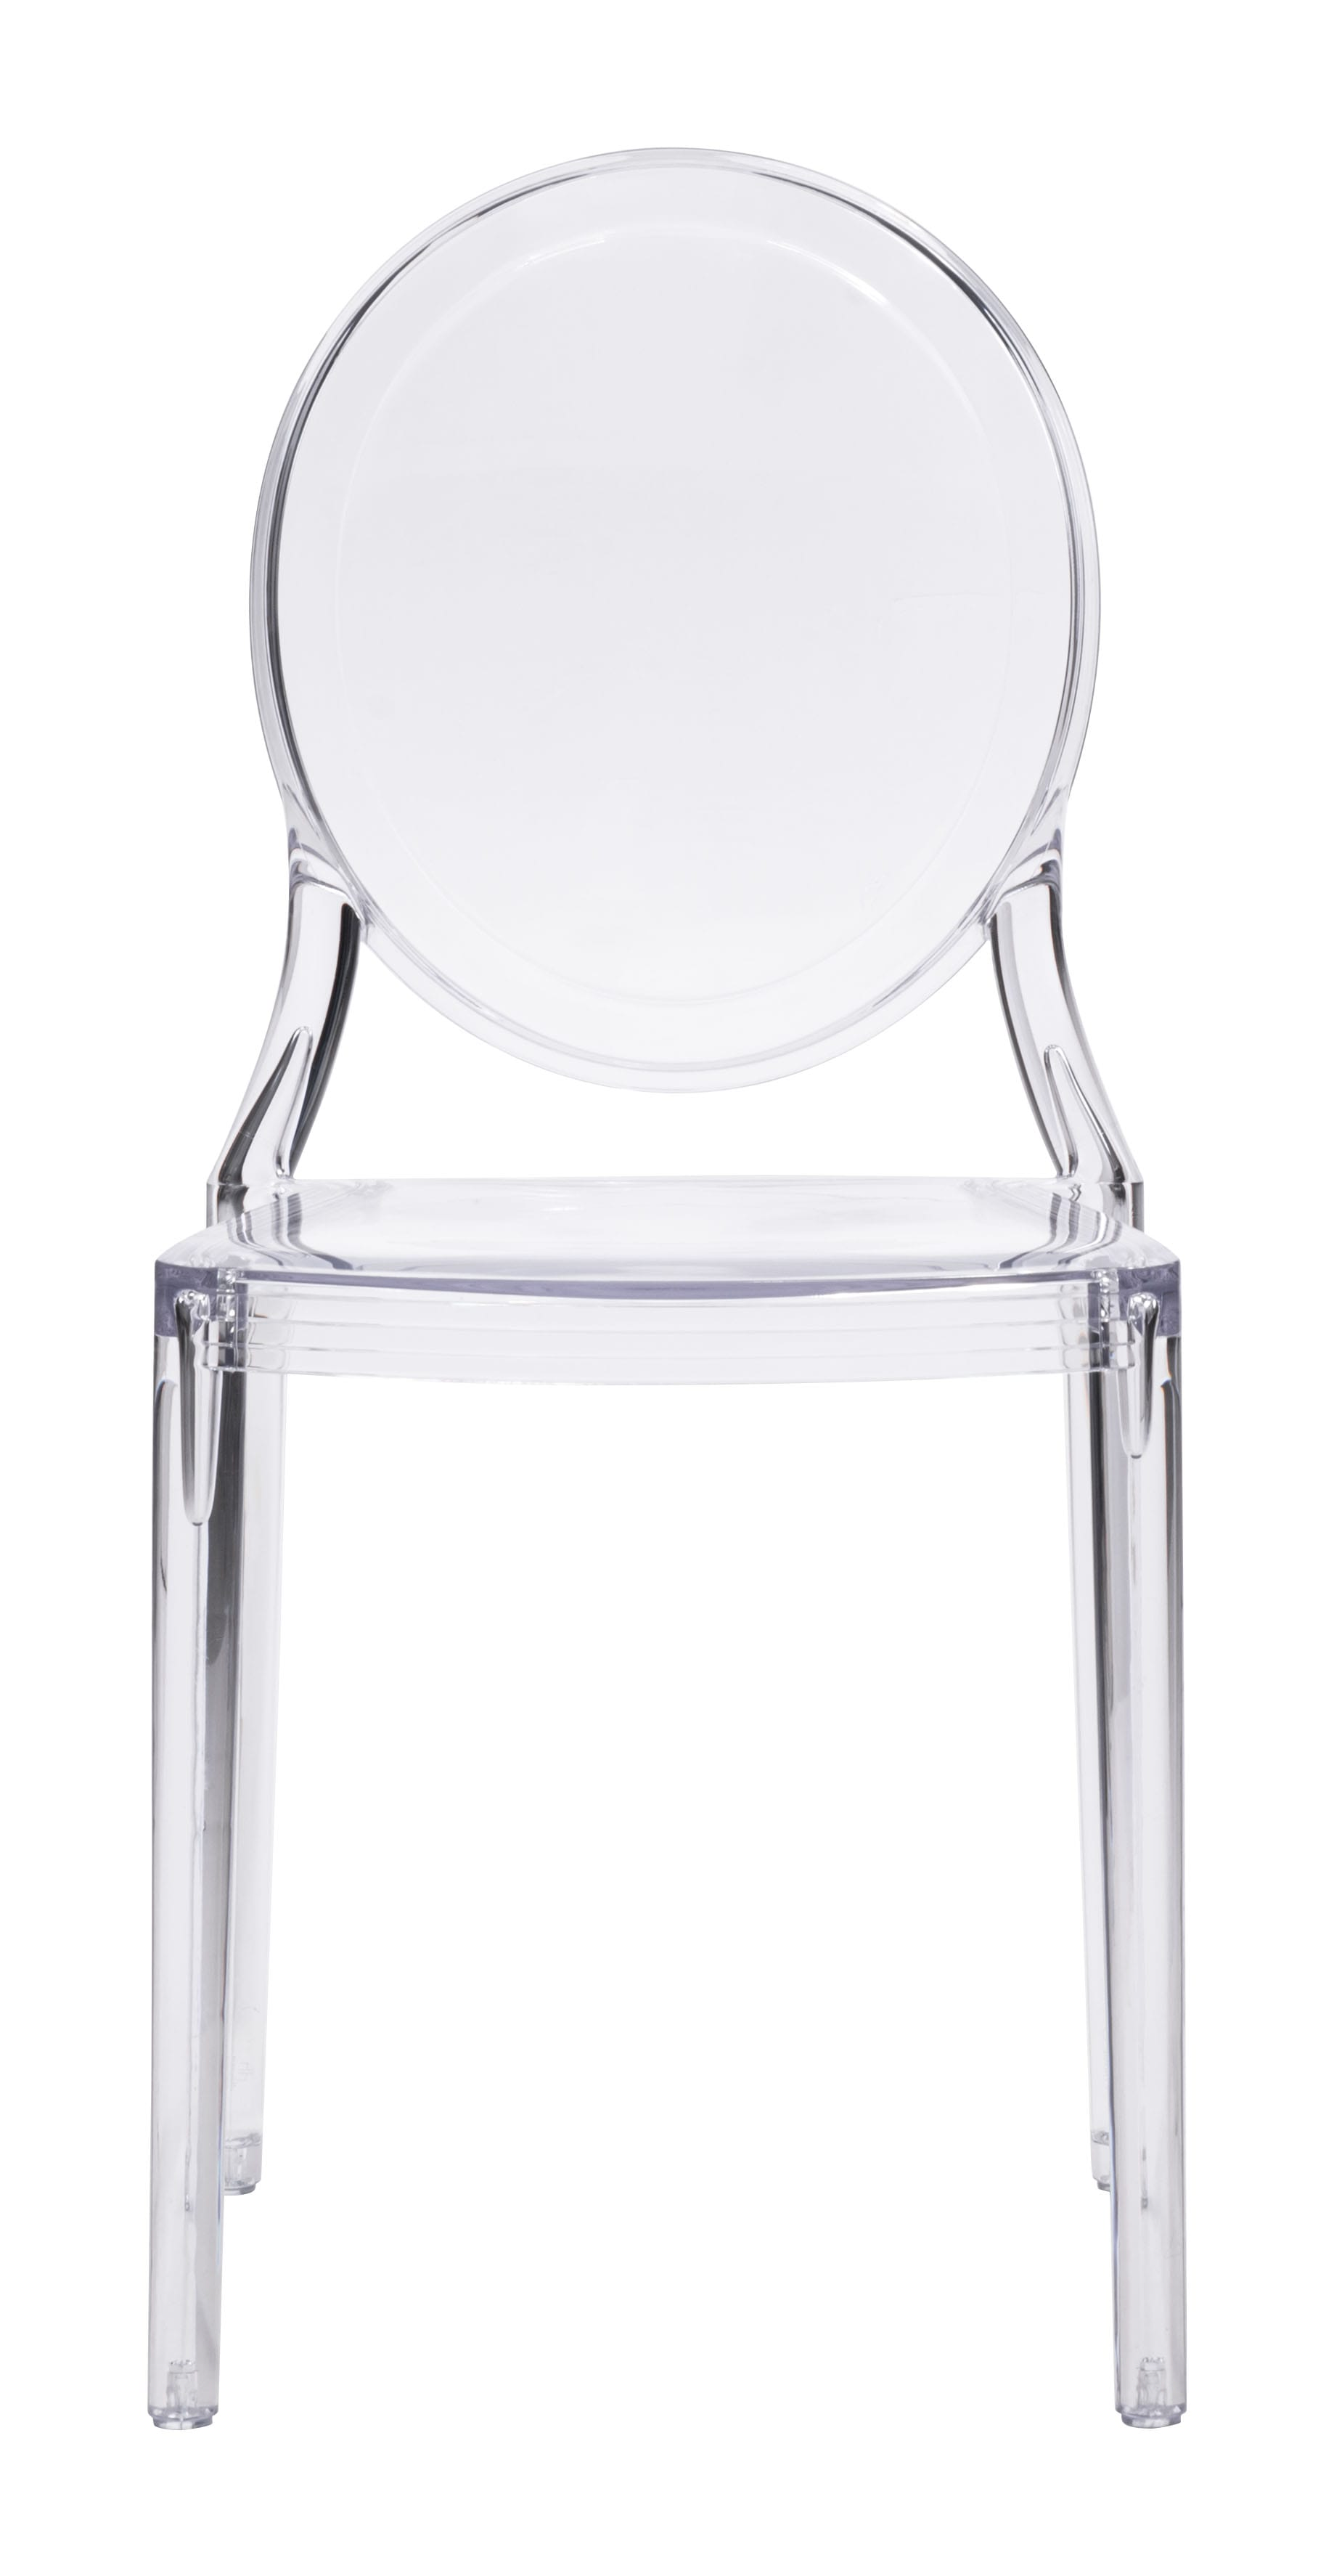 Specter Dining Chair Clear Set of 2 by Zuo Modern